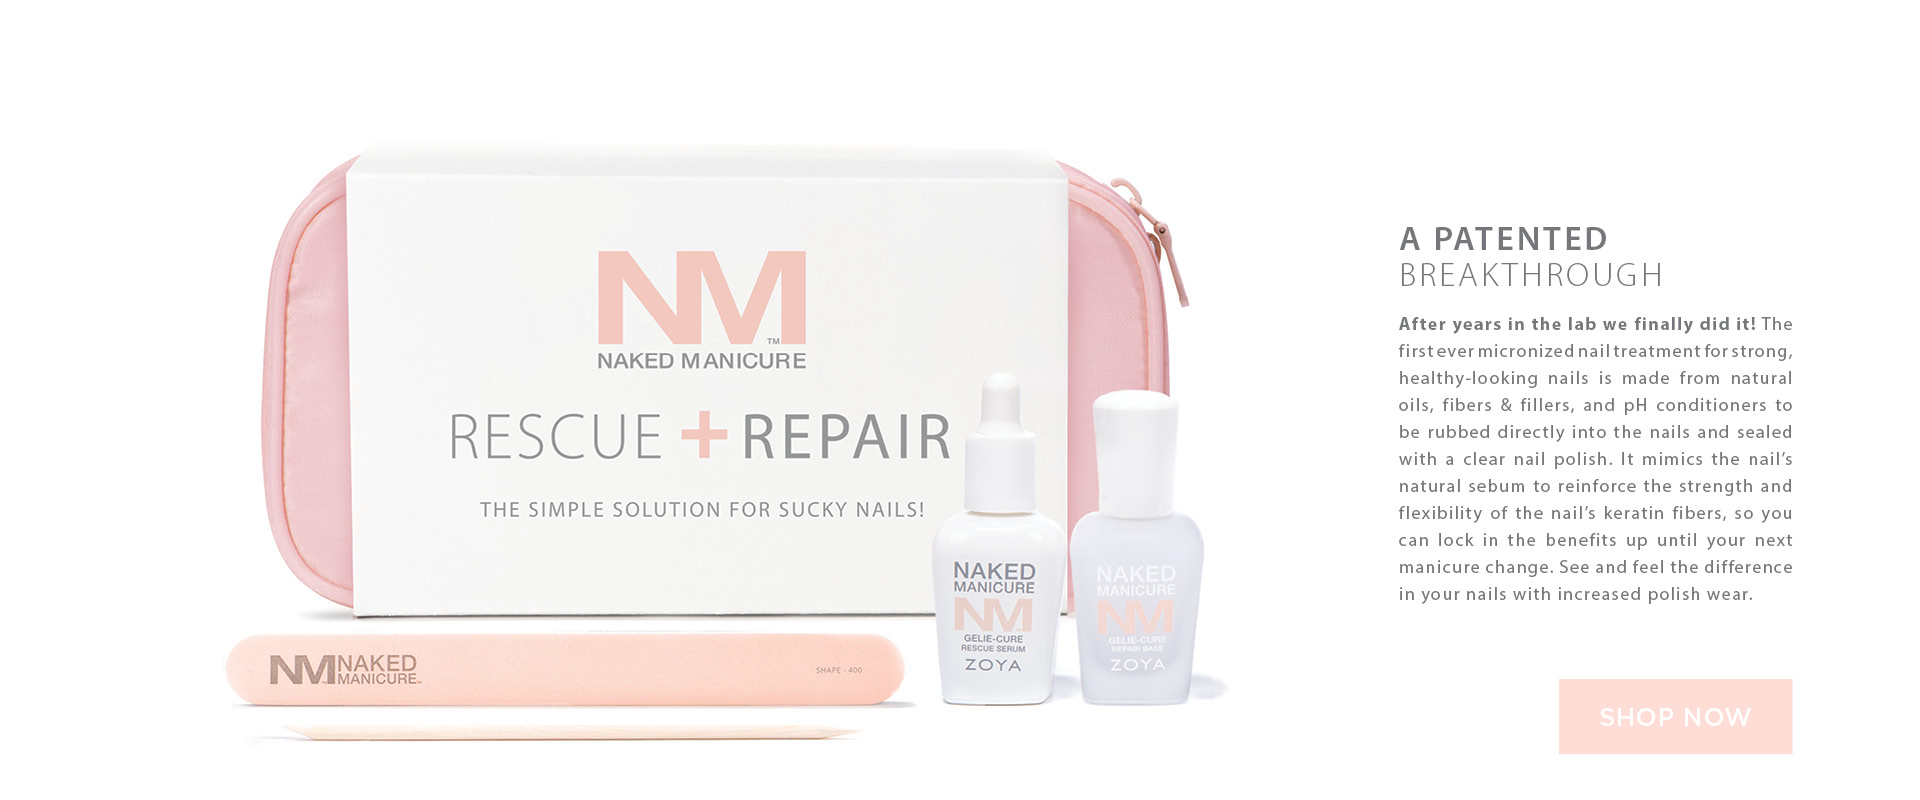 ZOYA Naked Manicure Rescue Repair Kit